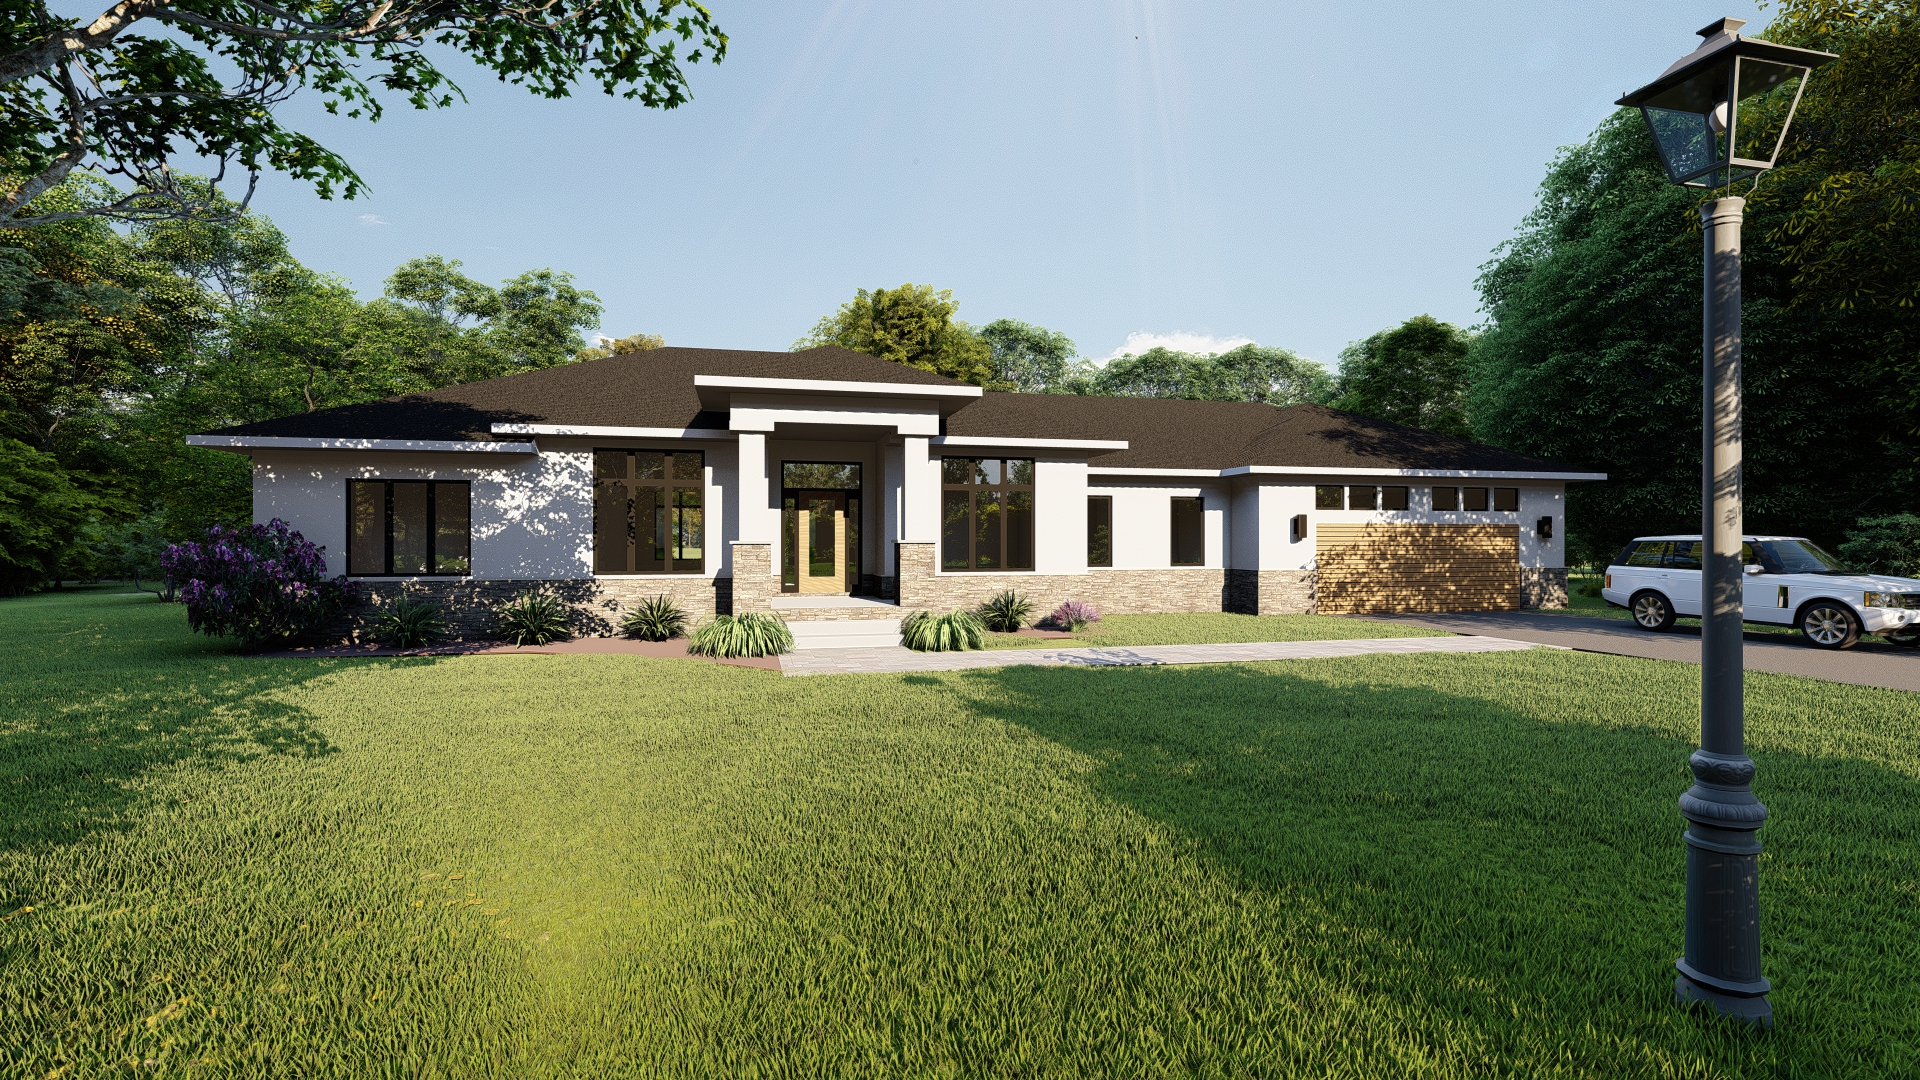 Rendering of newly designed ranch style home in buffalo ny